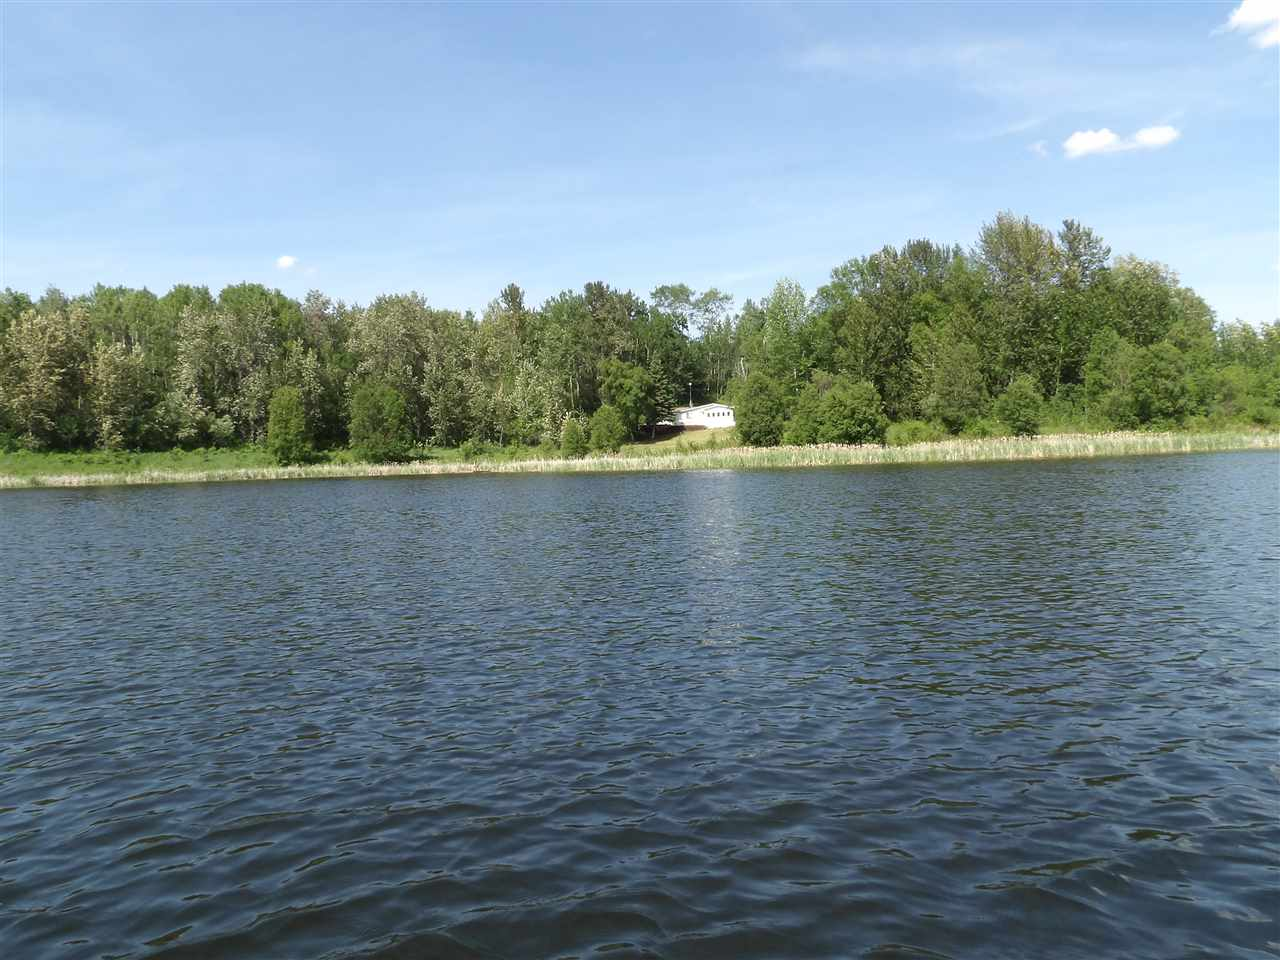 Photo 2: 1401 TWP RD 540 Road: Rural Parkland County House for sale : MLS® # E4068749